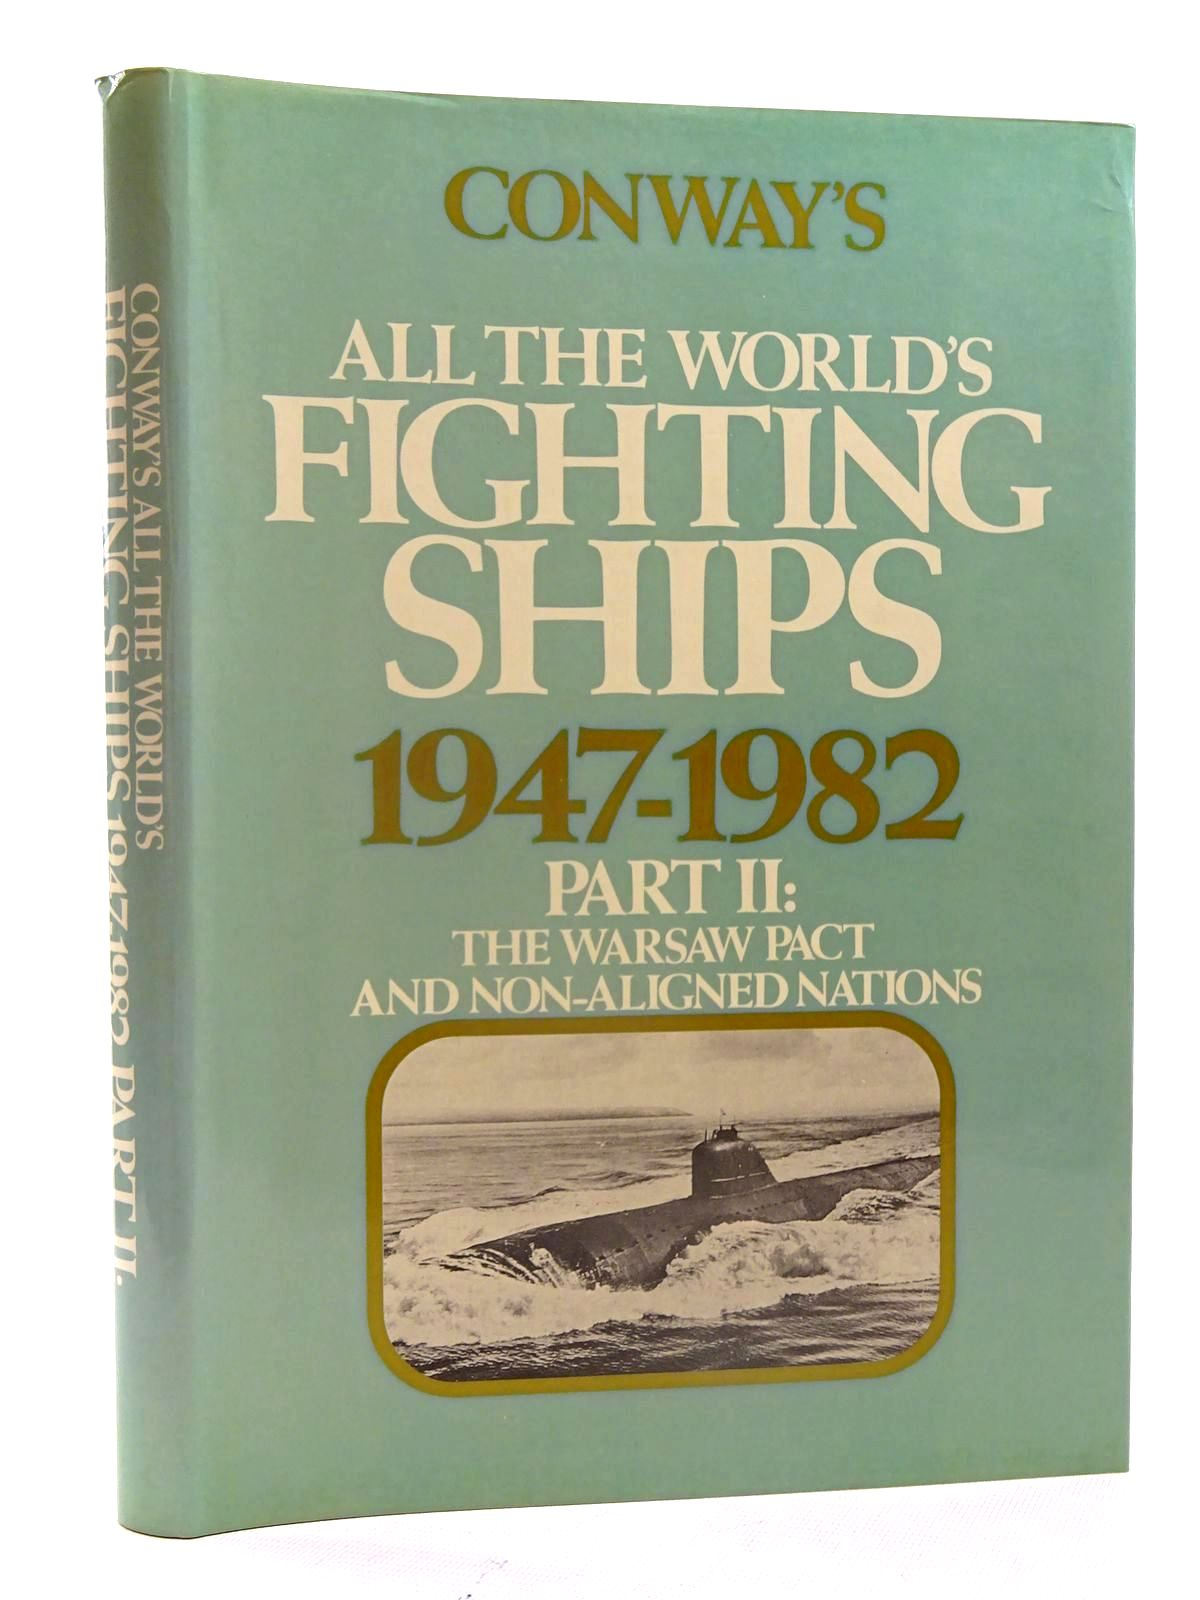 Photo of CONWAY'S ALL THE WORLD'S FIGHTING SHIPS 1947-1982 PART II written by Gardiner, Robert published by Conway Maritime Press (STOCK CODE: 2125470)  for sale by Stella & Rose's Books